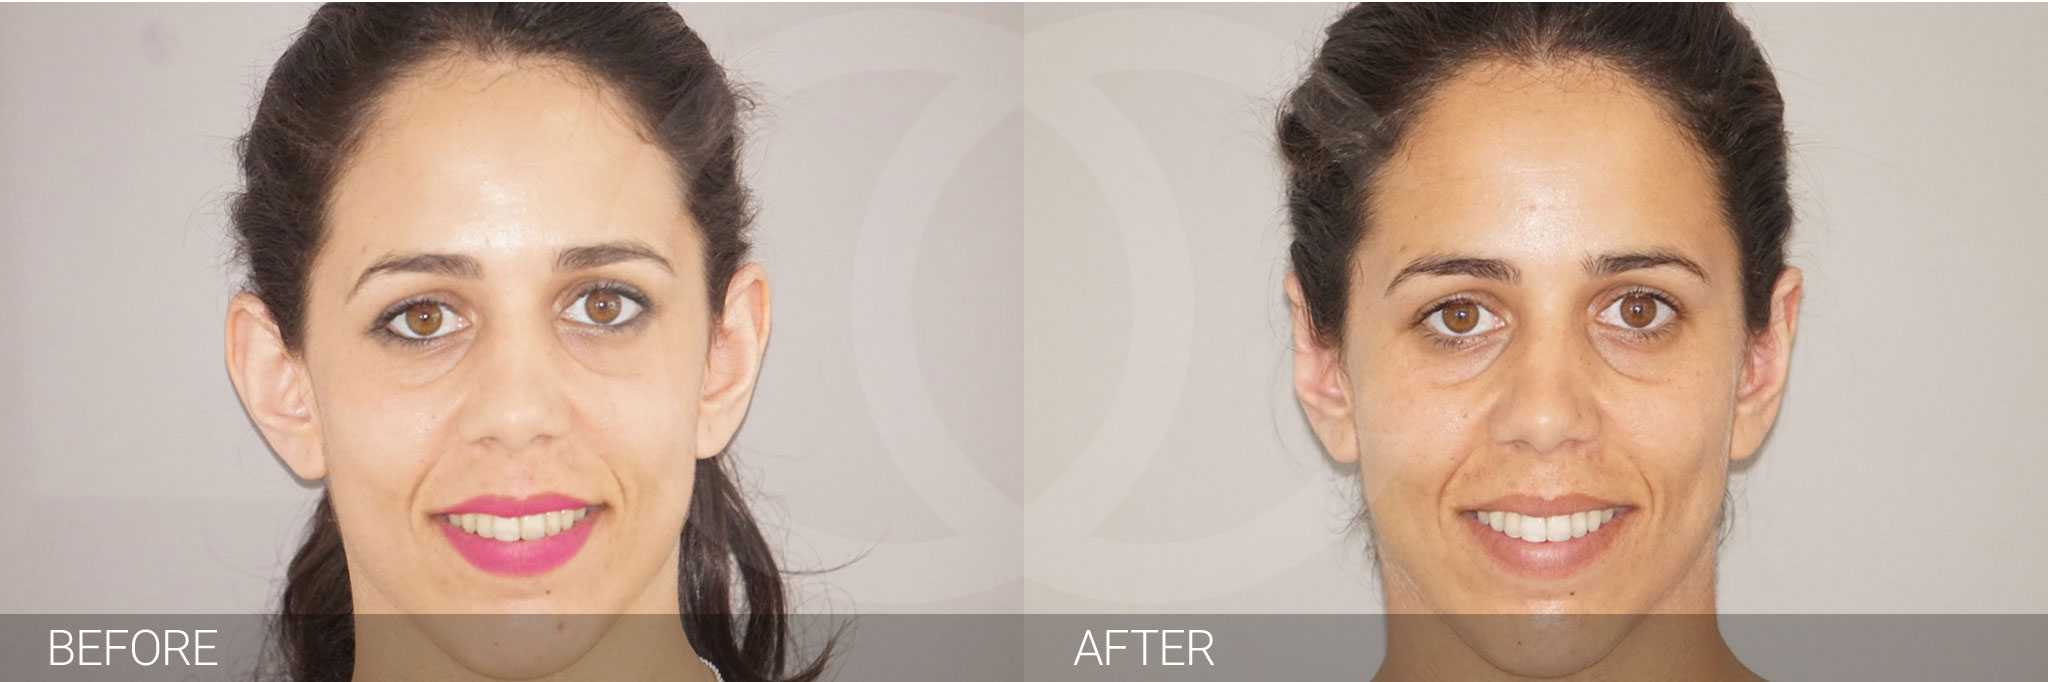 Ear Correction Ear Reshaping Antihelixplasty ante/post-op I